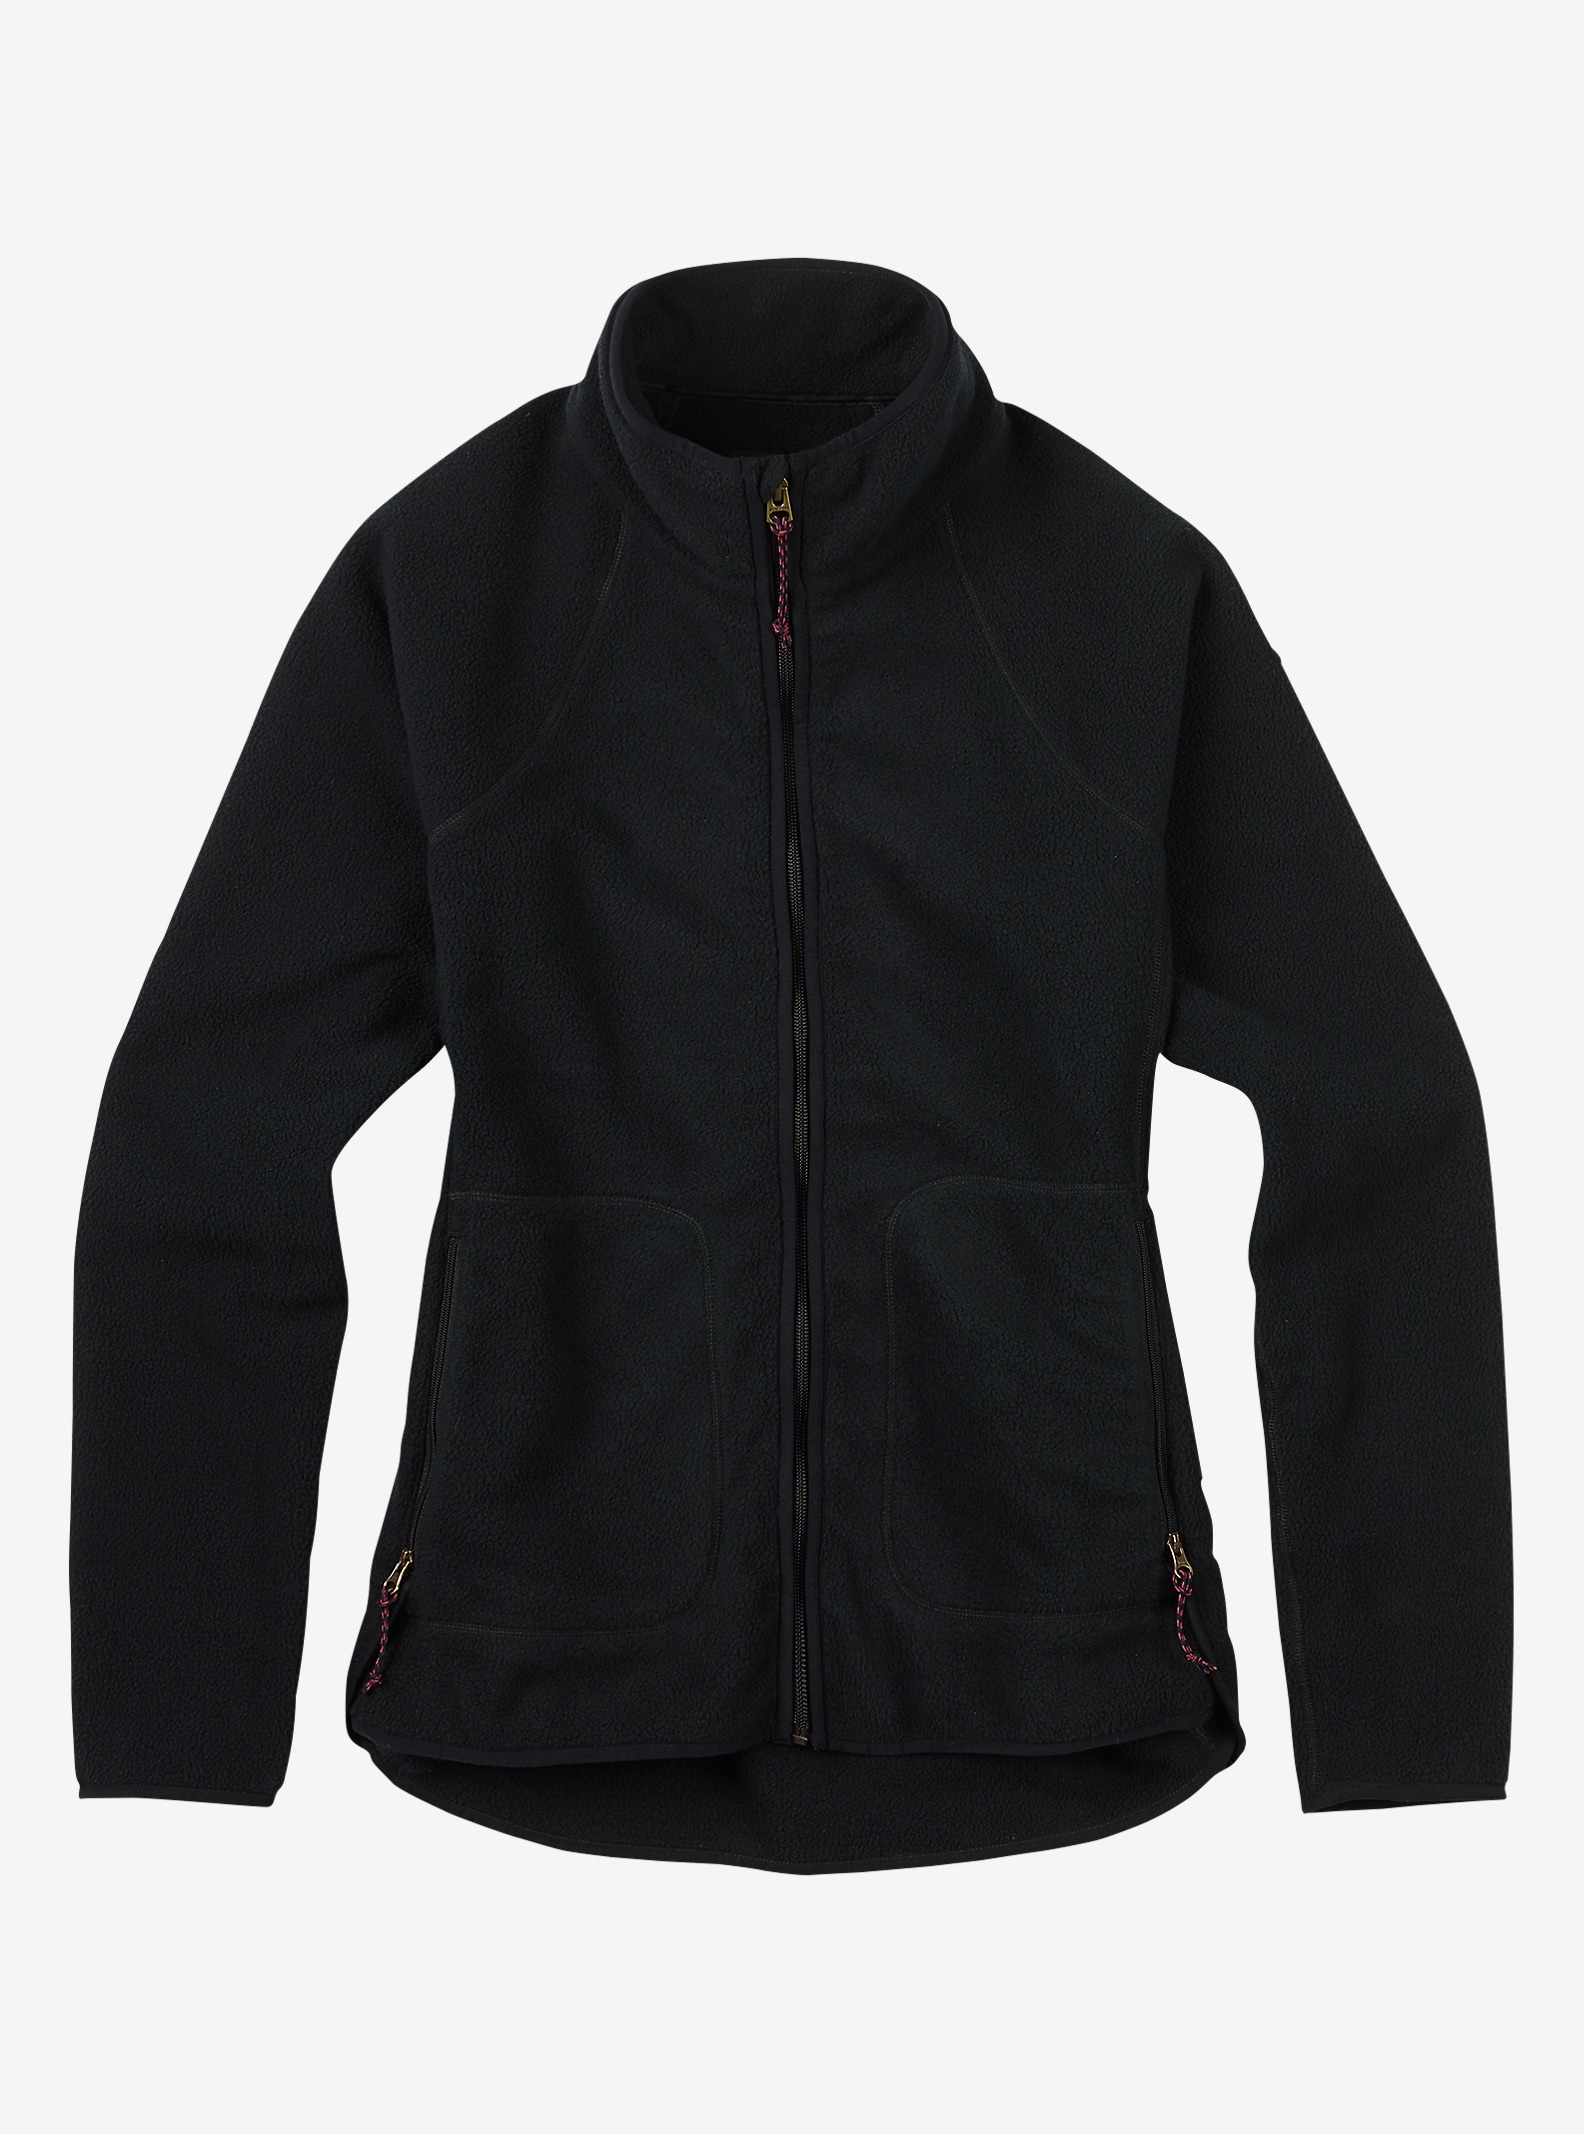 Burton Lira Full-Zip Fleece shown in True Black